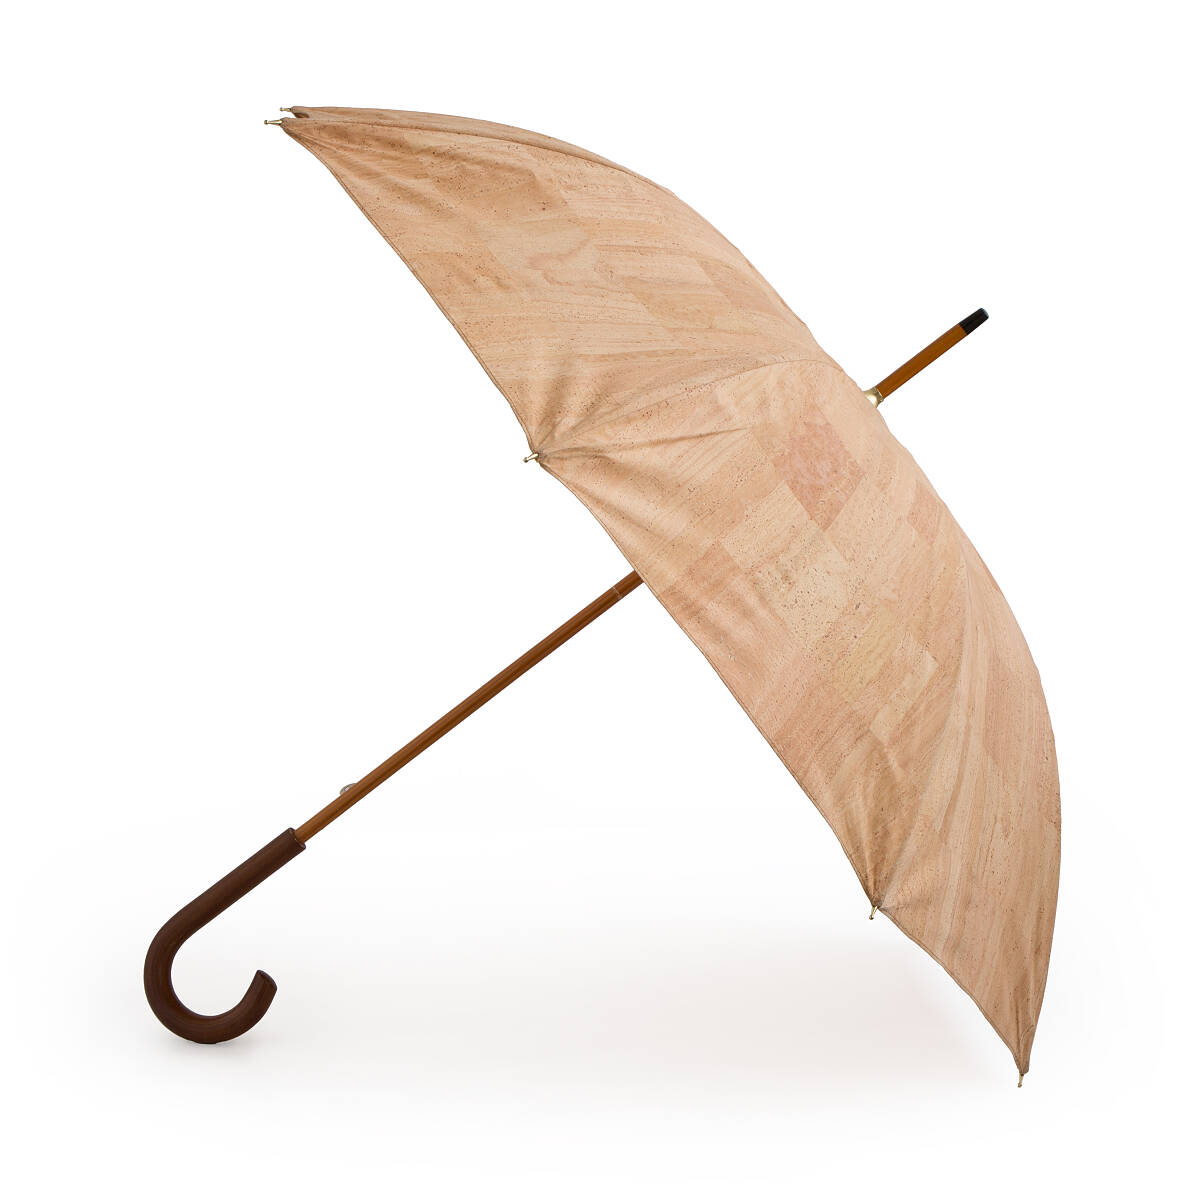 natural cork umbrella | weather cork, cork fabric | uncommongoods